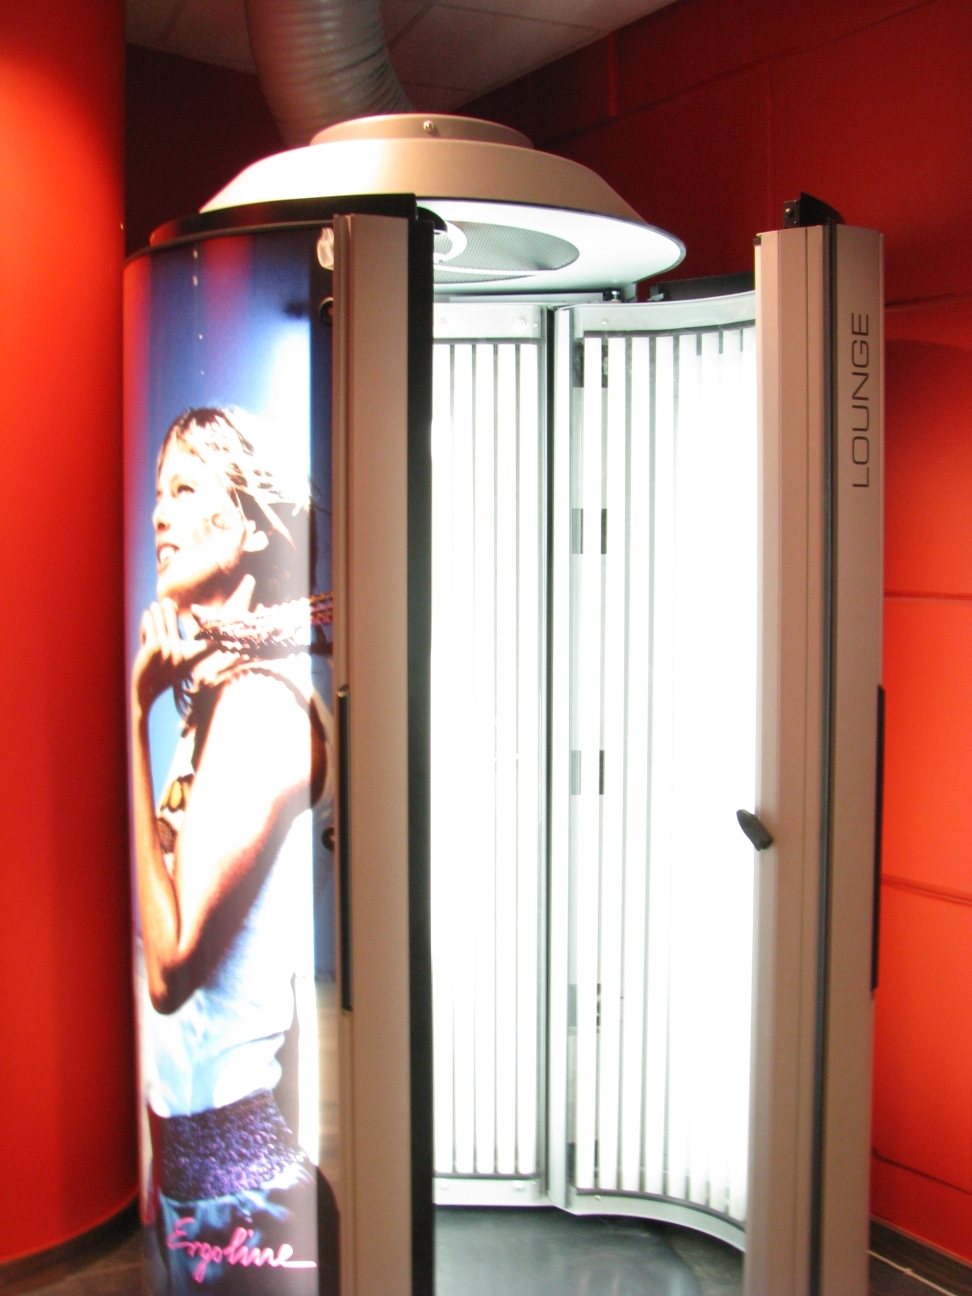 Are Tanning Beds Safe In Small Doses